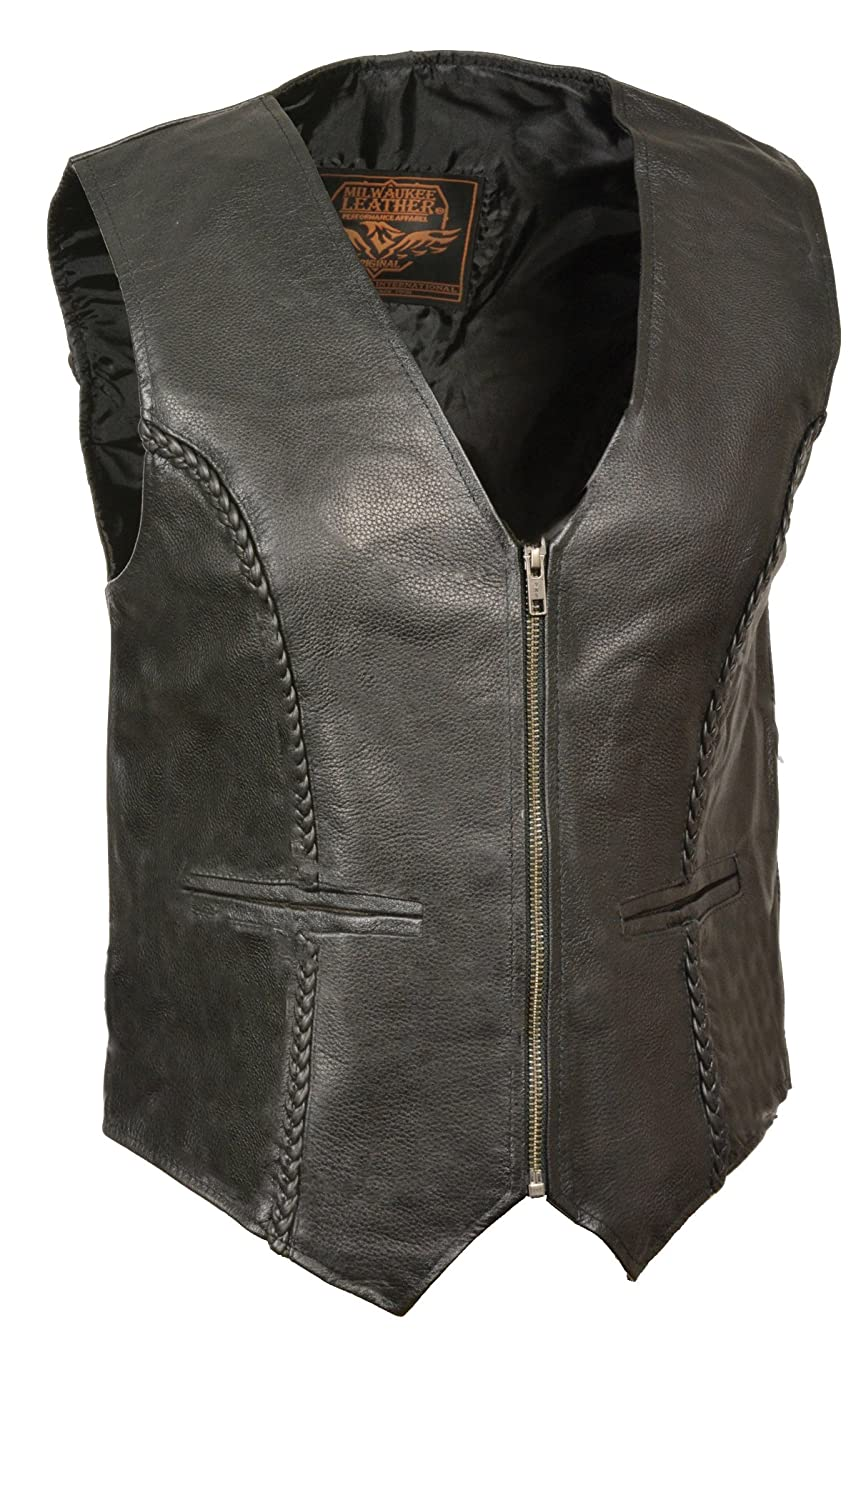 Black, 3X-Large Milwaukee Leather Womens Zipper Front Braided Vest